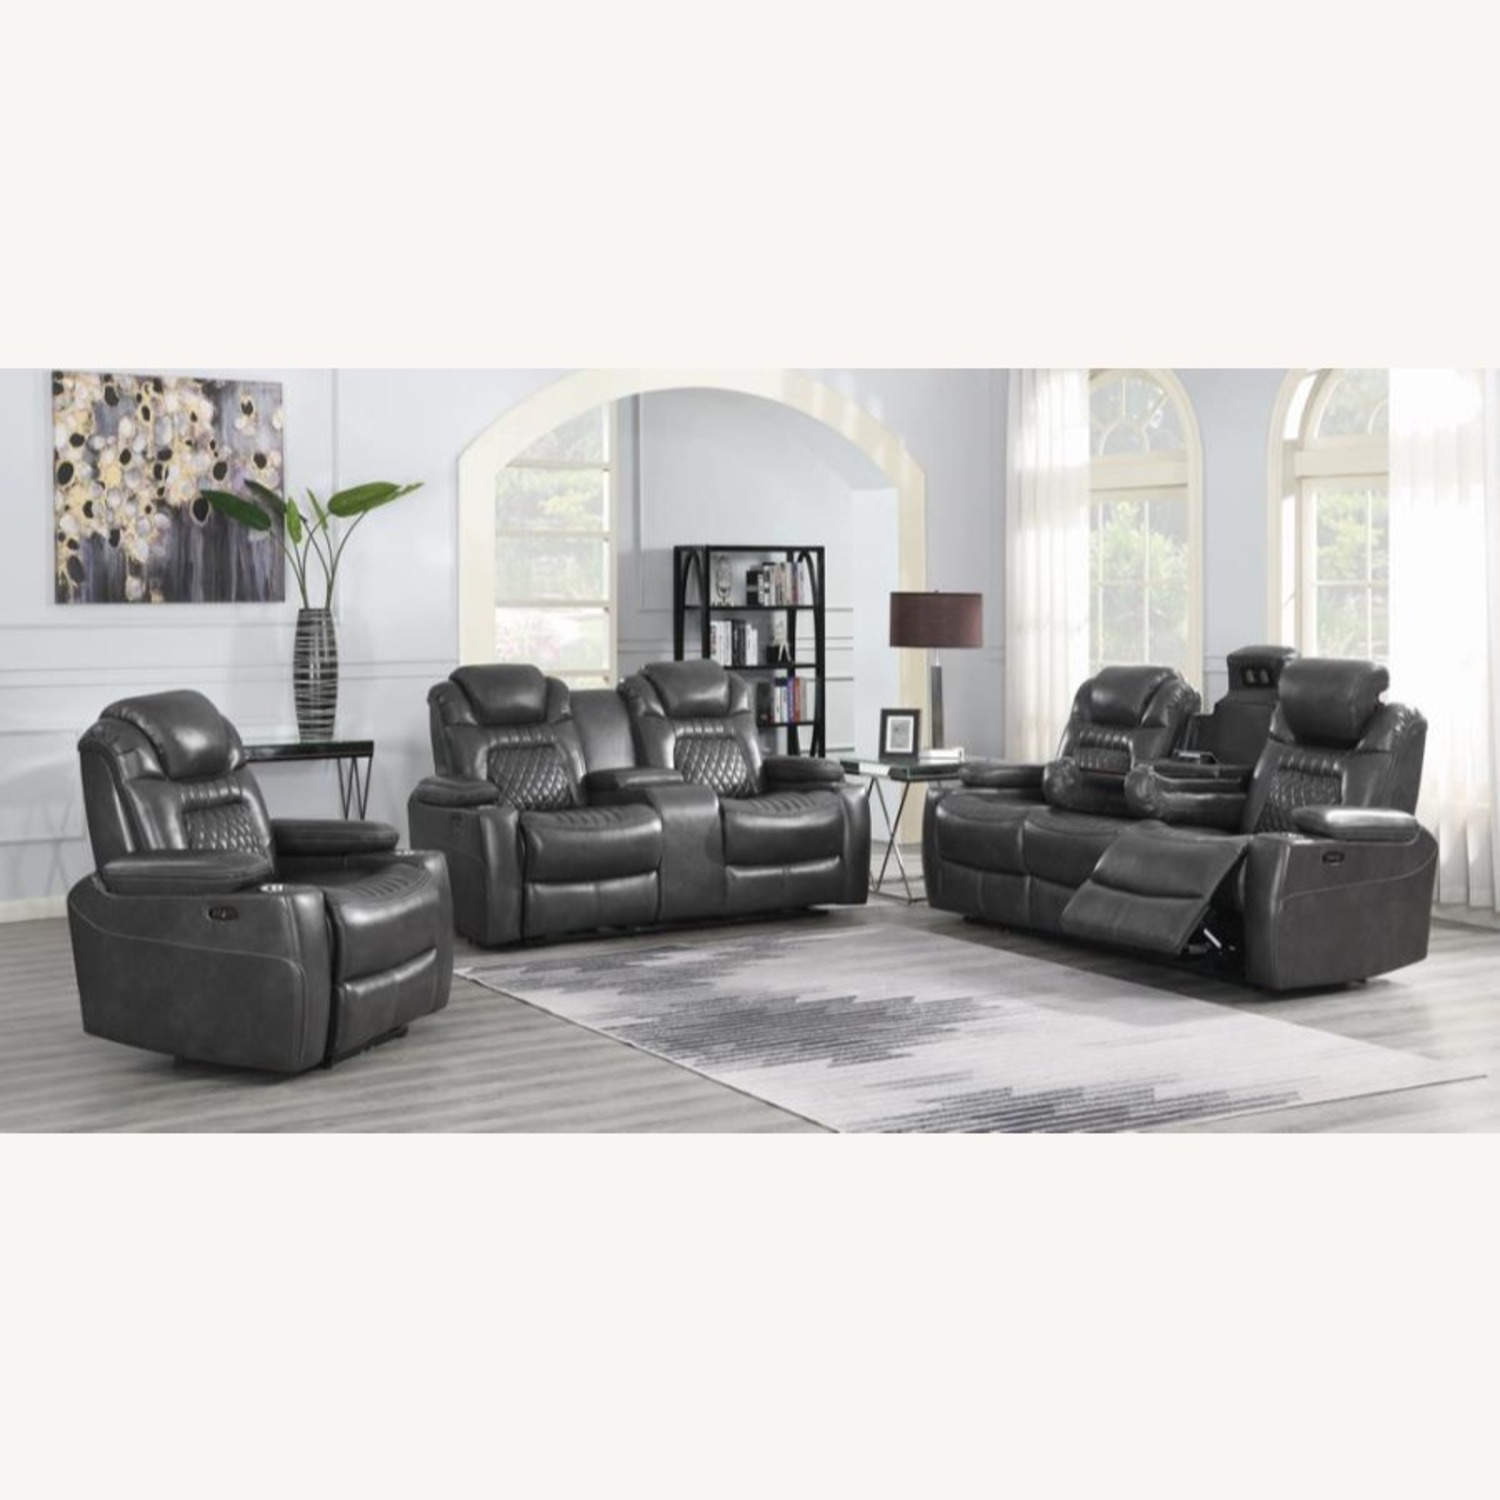 Power Recliner In Charcoal Microfiber Upholstery - image-7